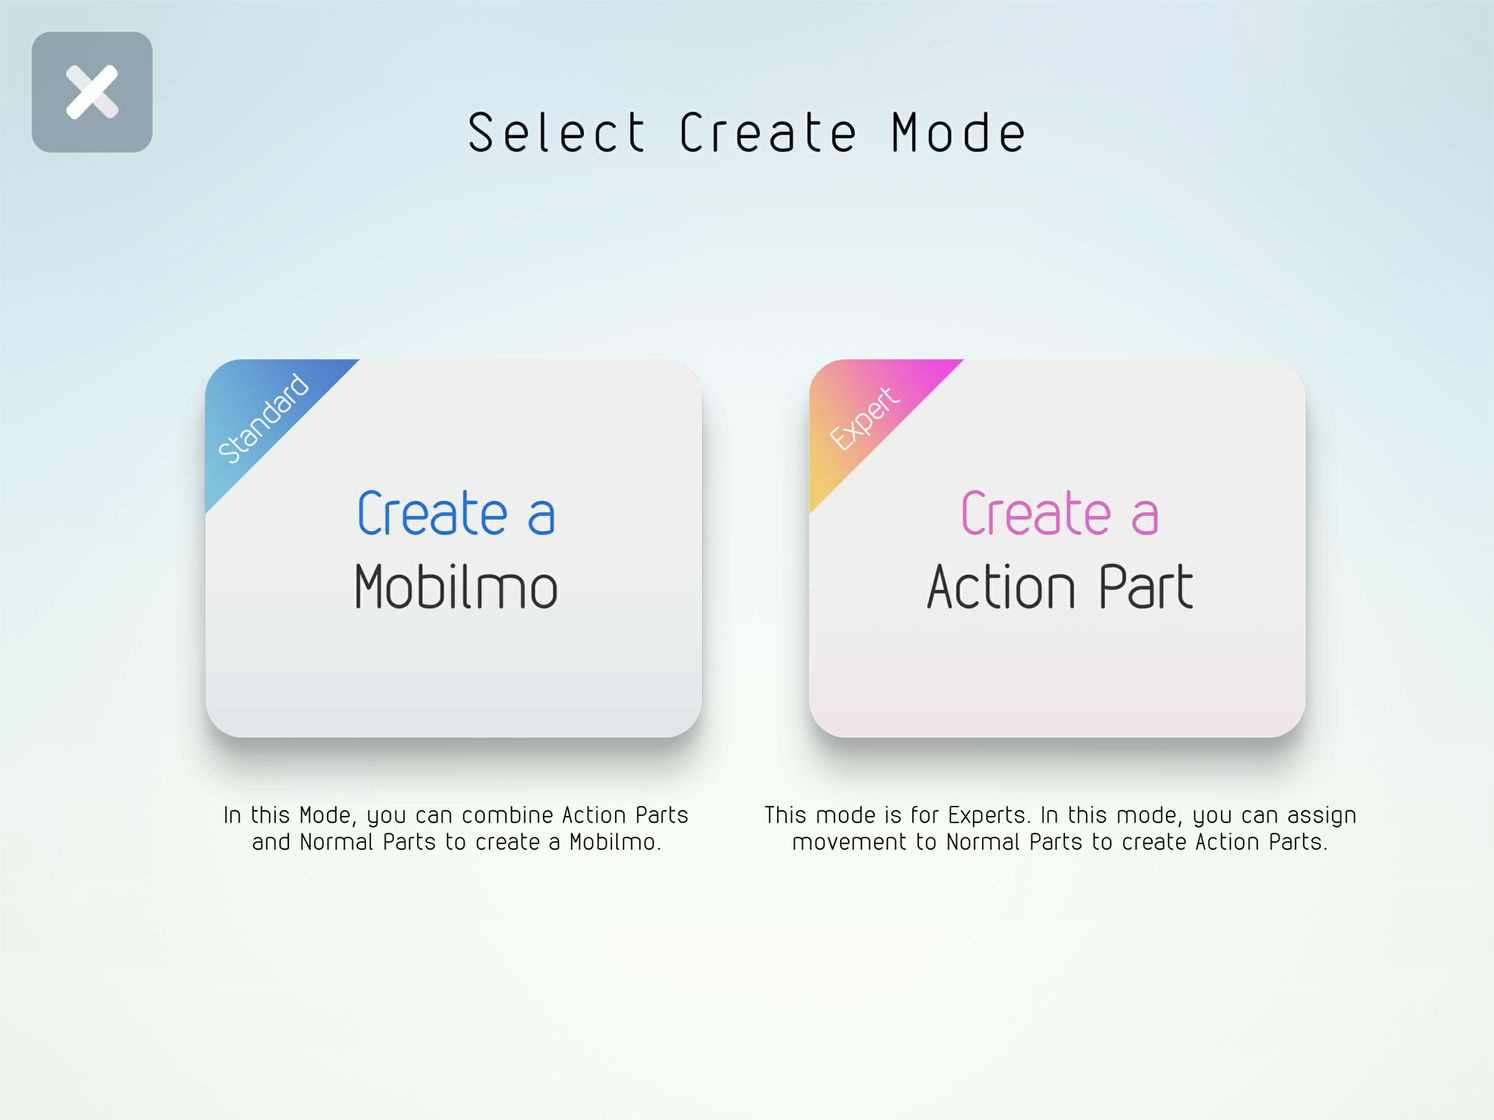 Mobilmo creation mode (for beginners) and Action Parts creation mode (for advanced users)